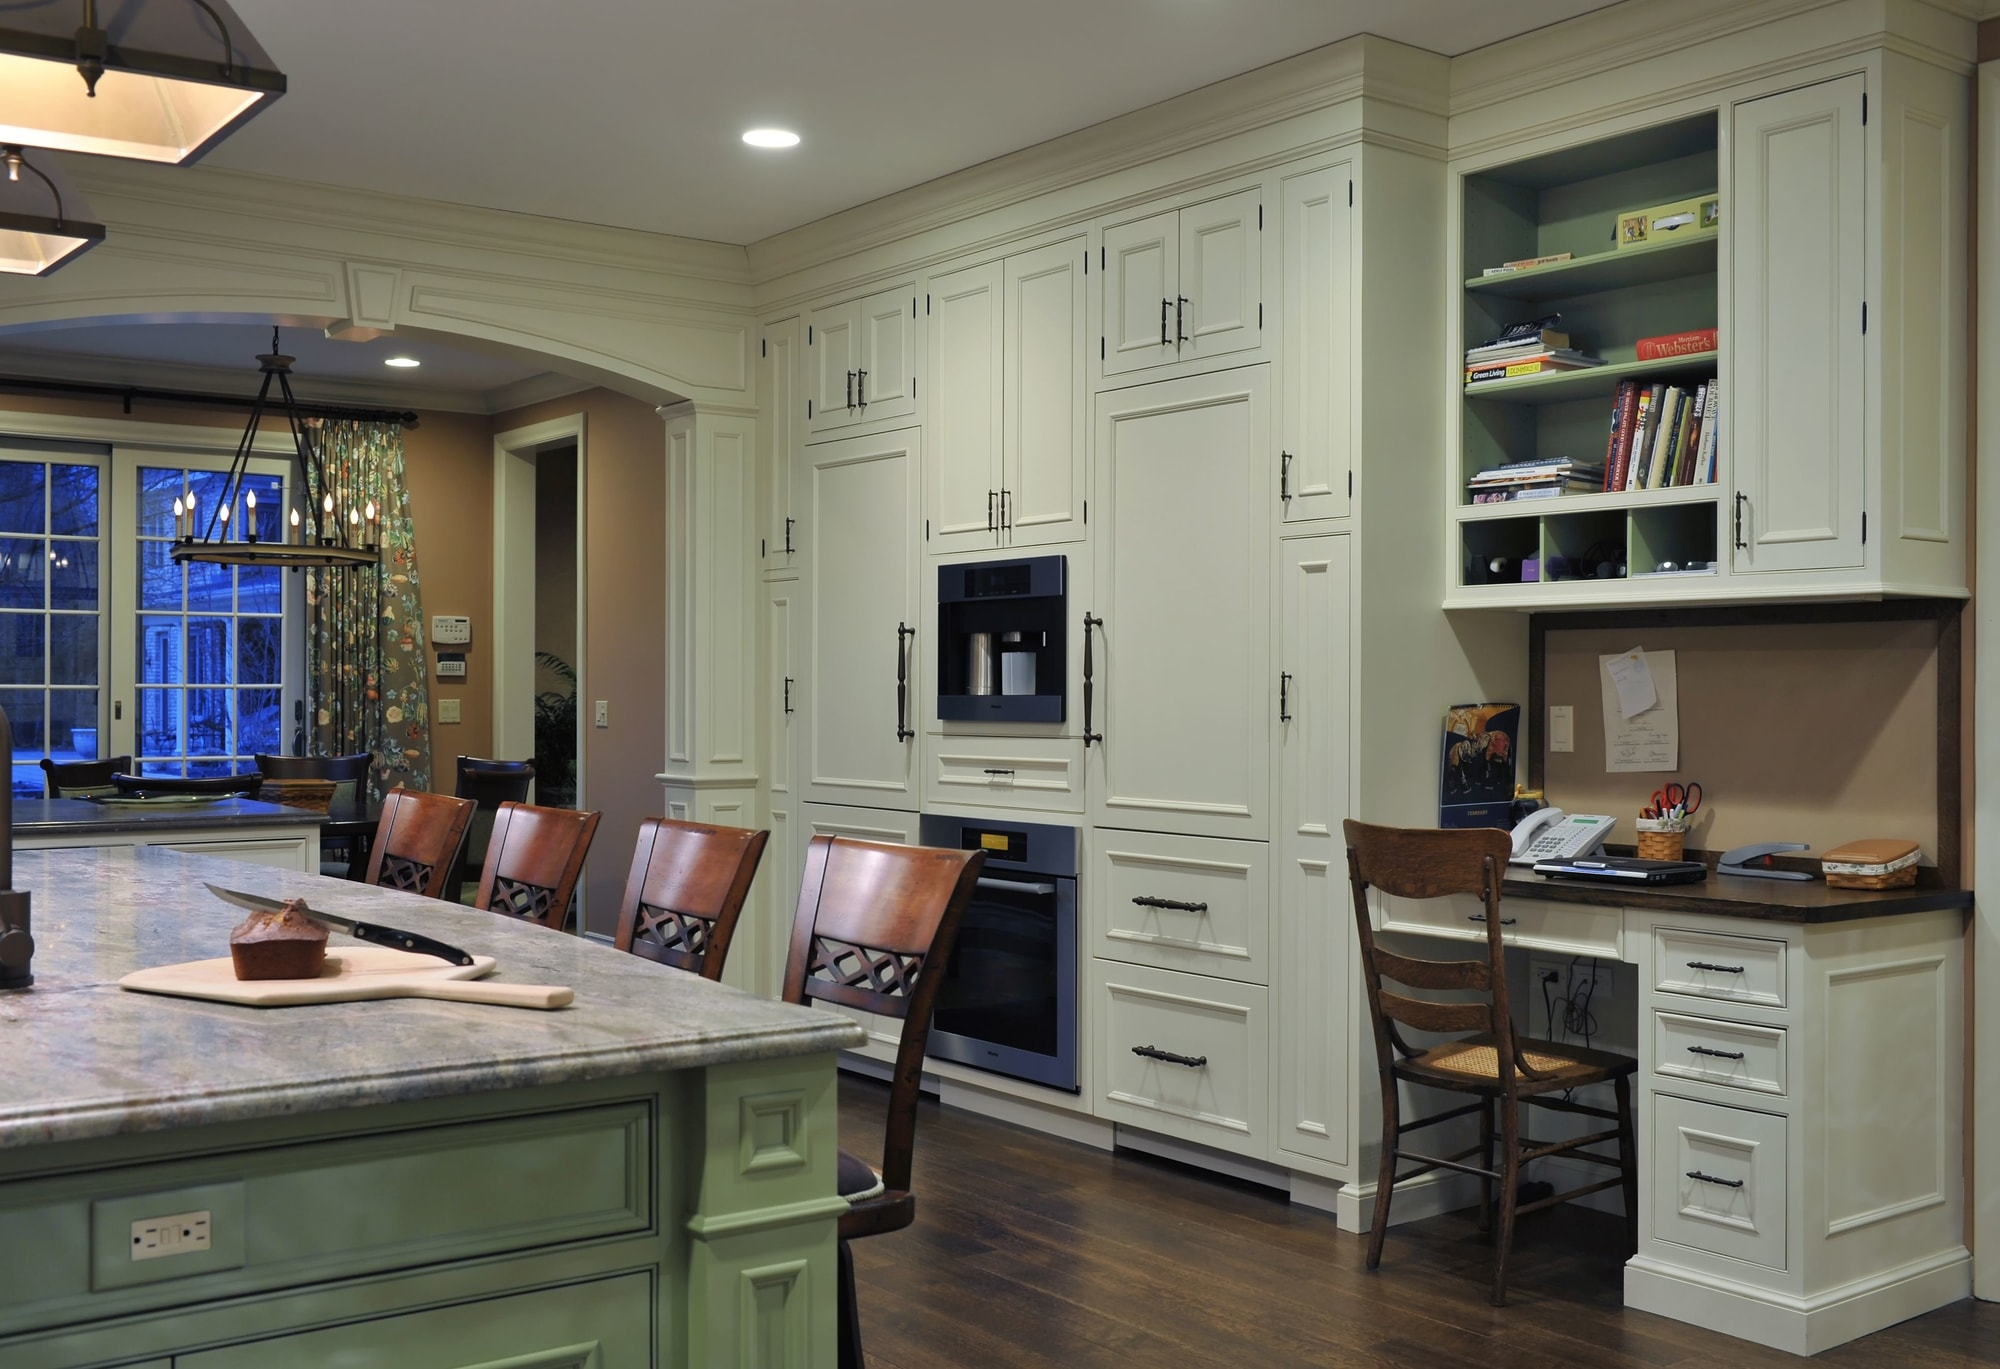 Traditional style kitchen with small workstation in the corner